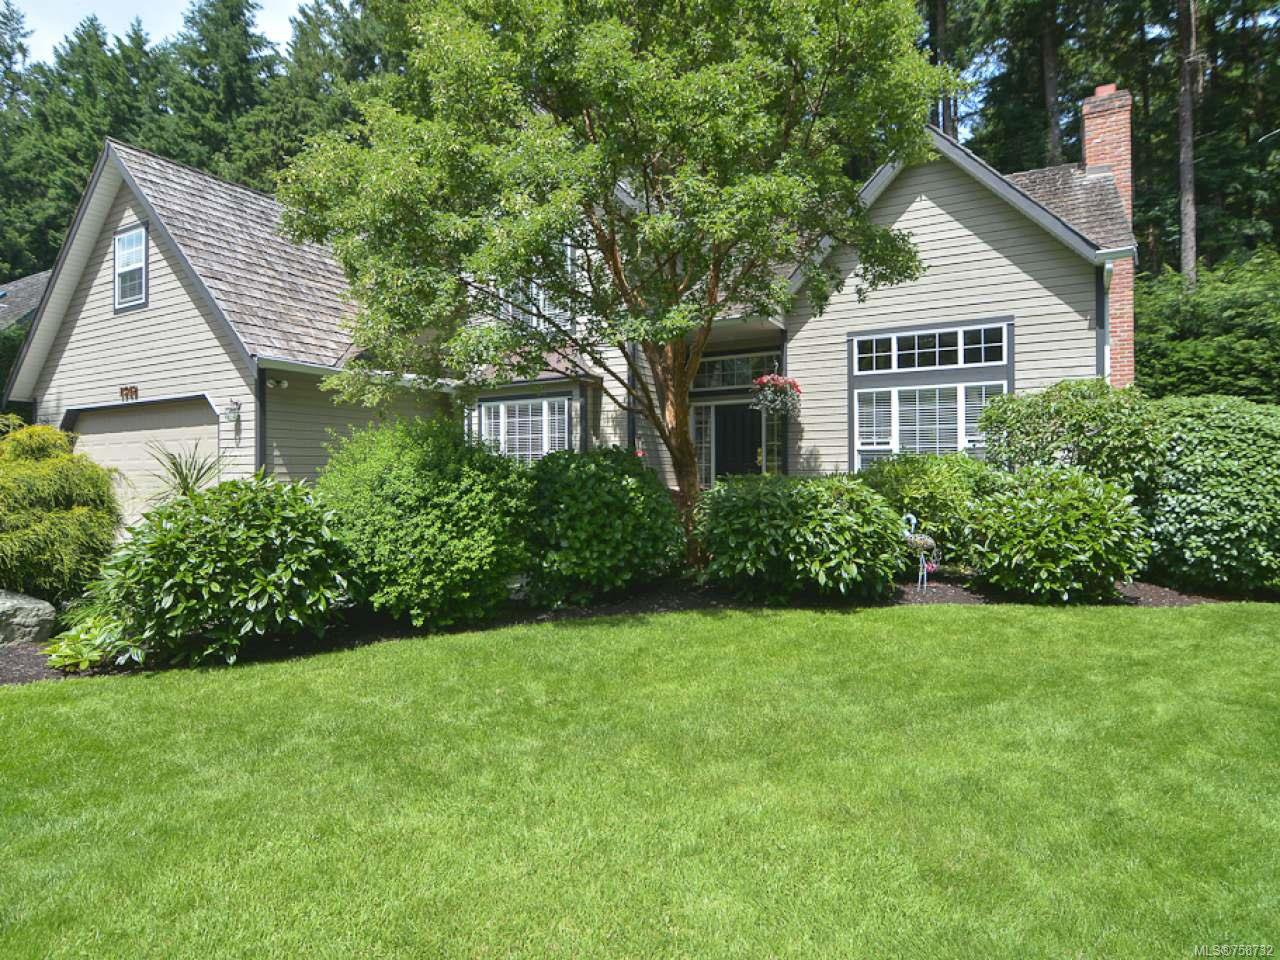 Main Photo: 1542 MULBERRY Lane in COMOX: CV Comox (Town of) House for sale (Comox Valley)  : MLS®# 758732